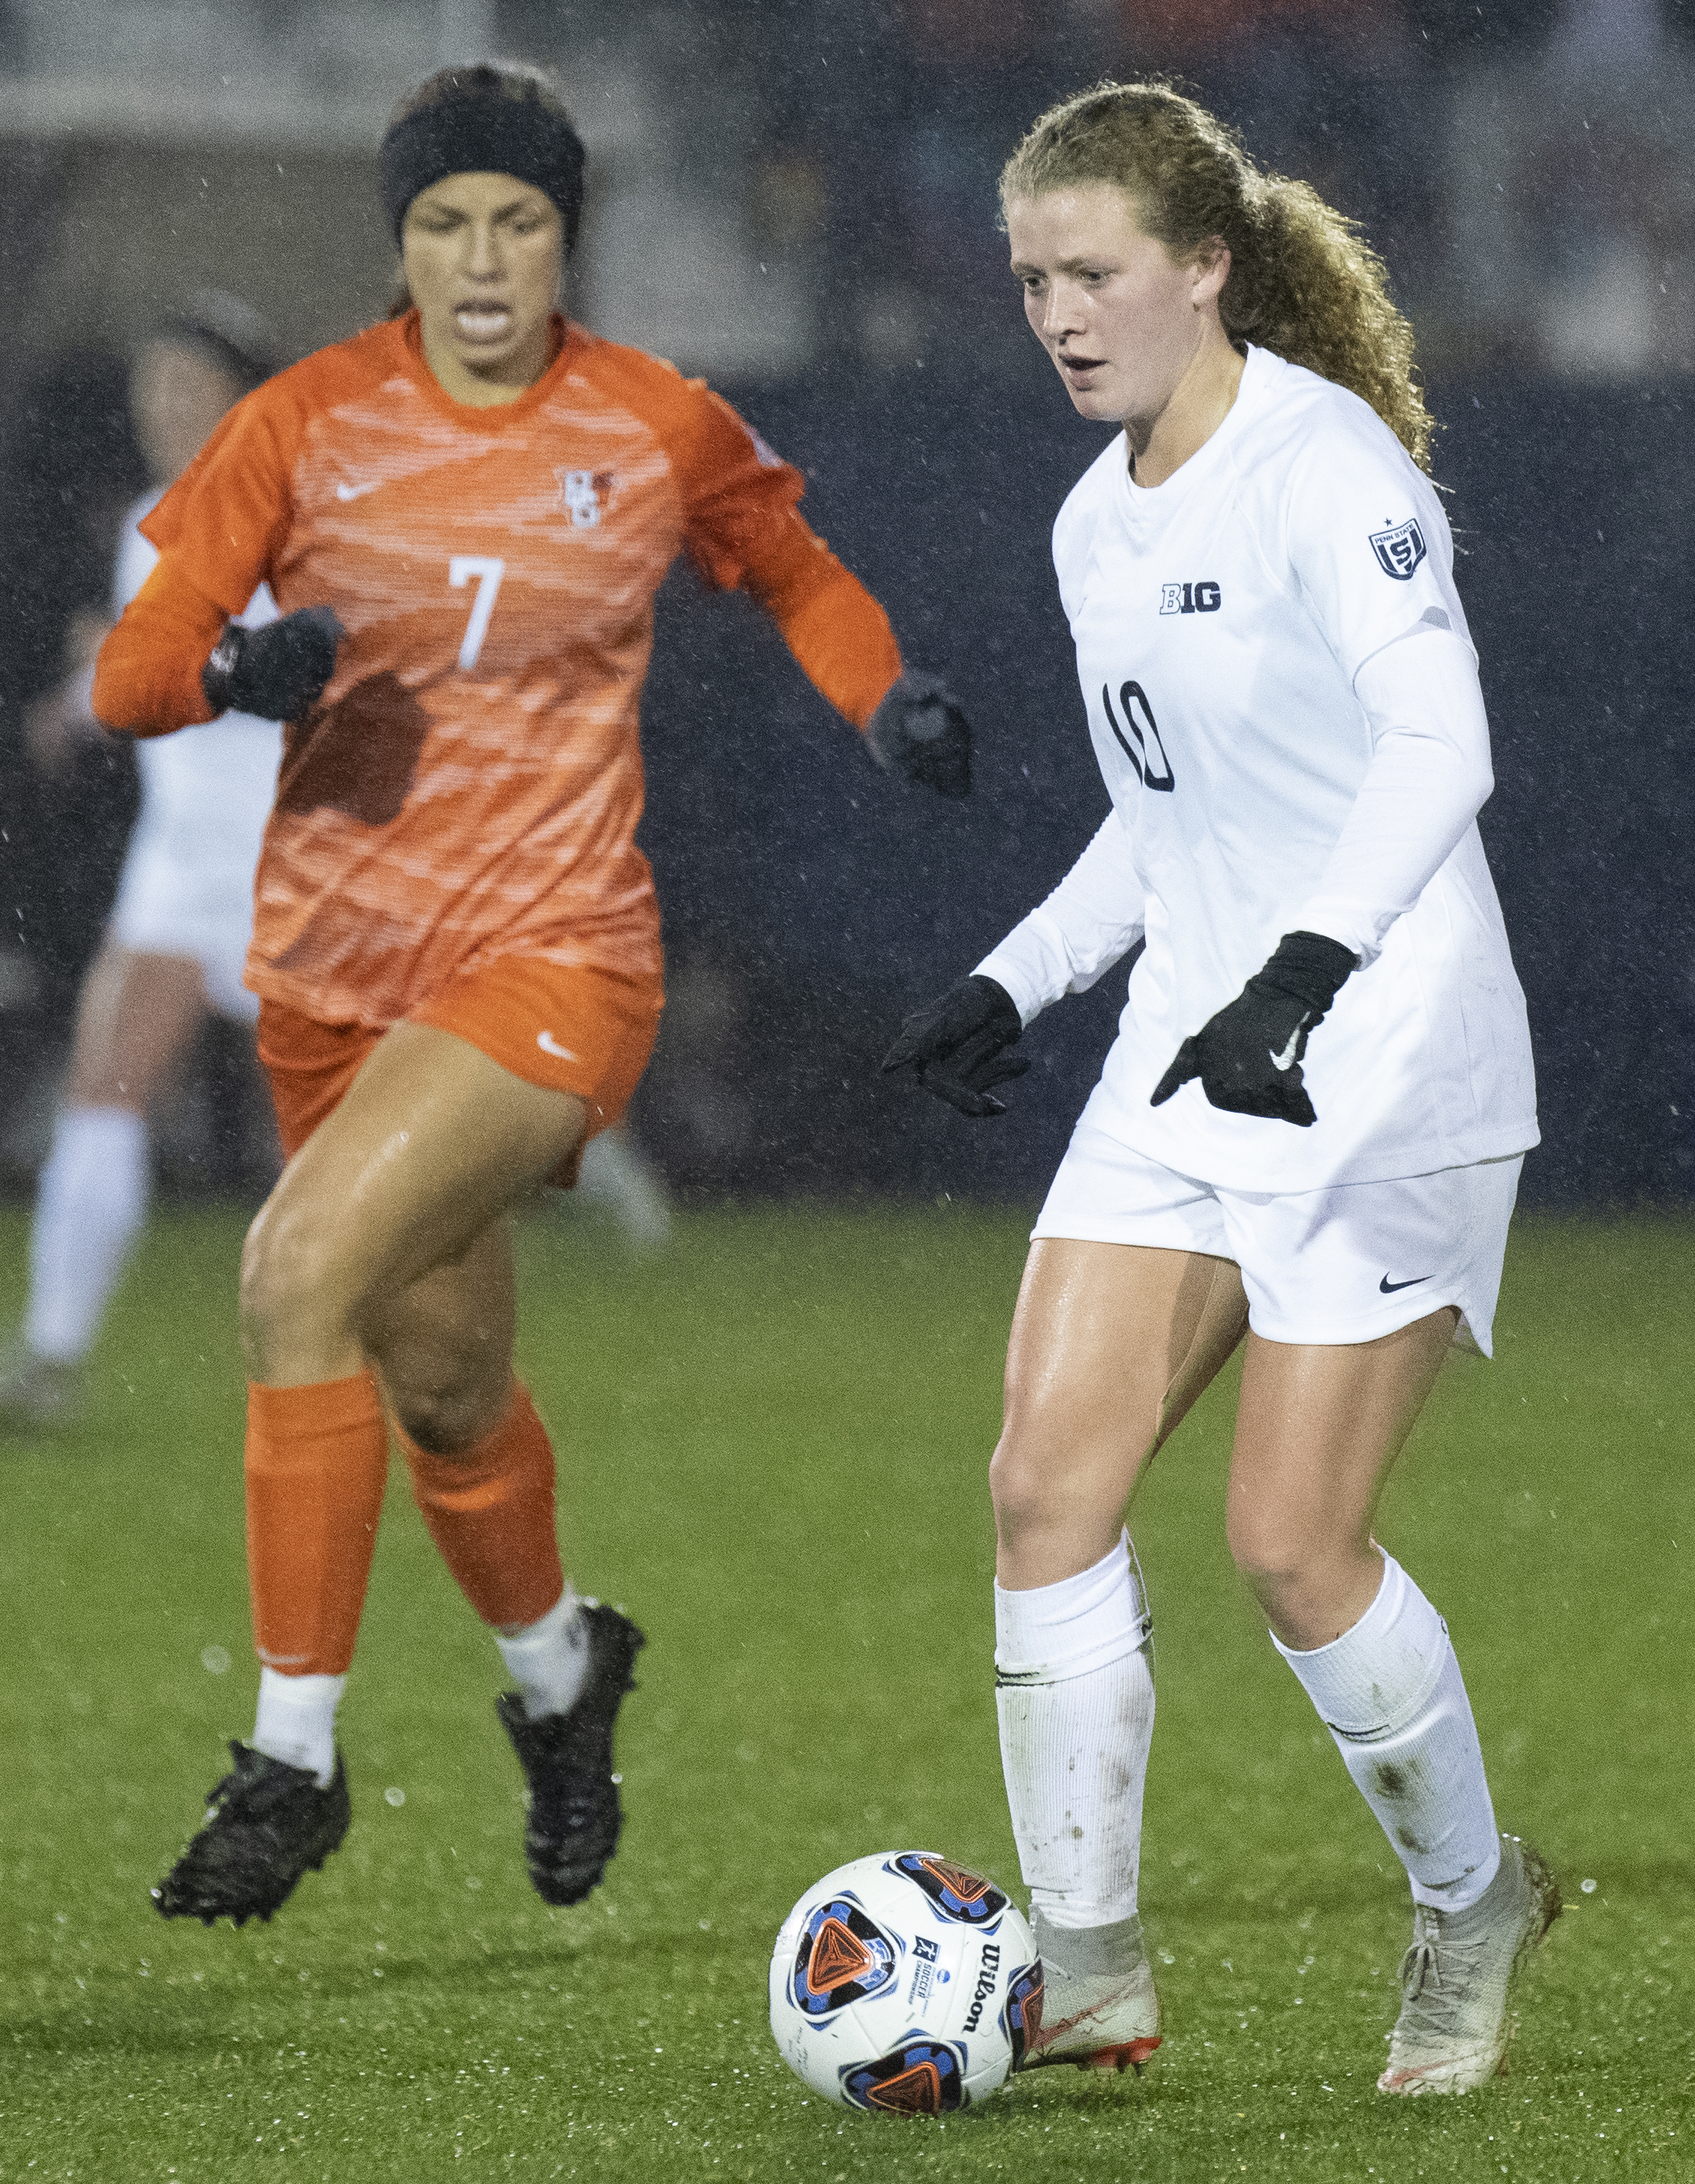 Midfielder Emily Ogle (10) dribbles the ball during the NCAA tournament first round game against Bowling Green at Jeffrey Field on Friday, Nov. 9, 2018. The Nittany Lions defeat Bowling Green 4-1 and advance to the second round of the NCAA Tournament. | Photo by: Noah Riffe